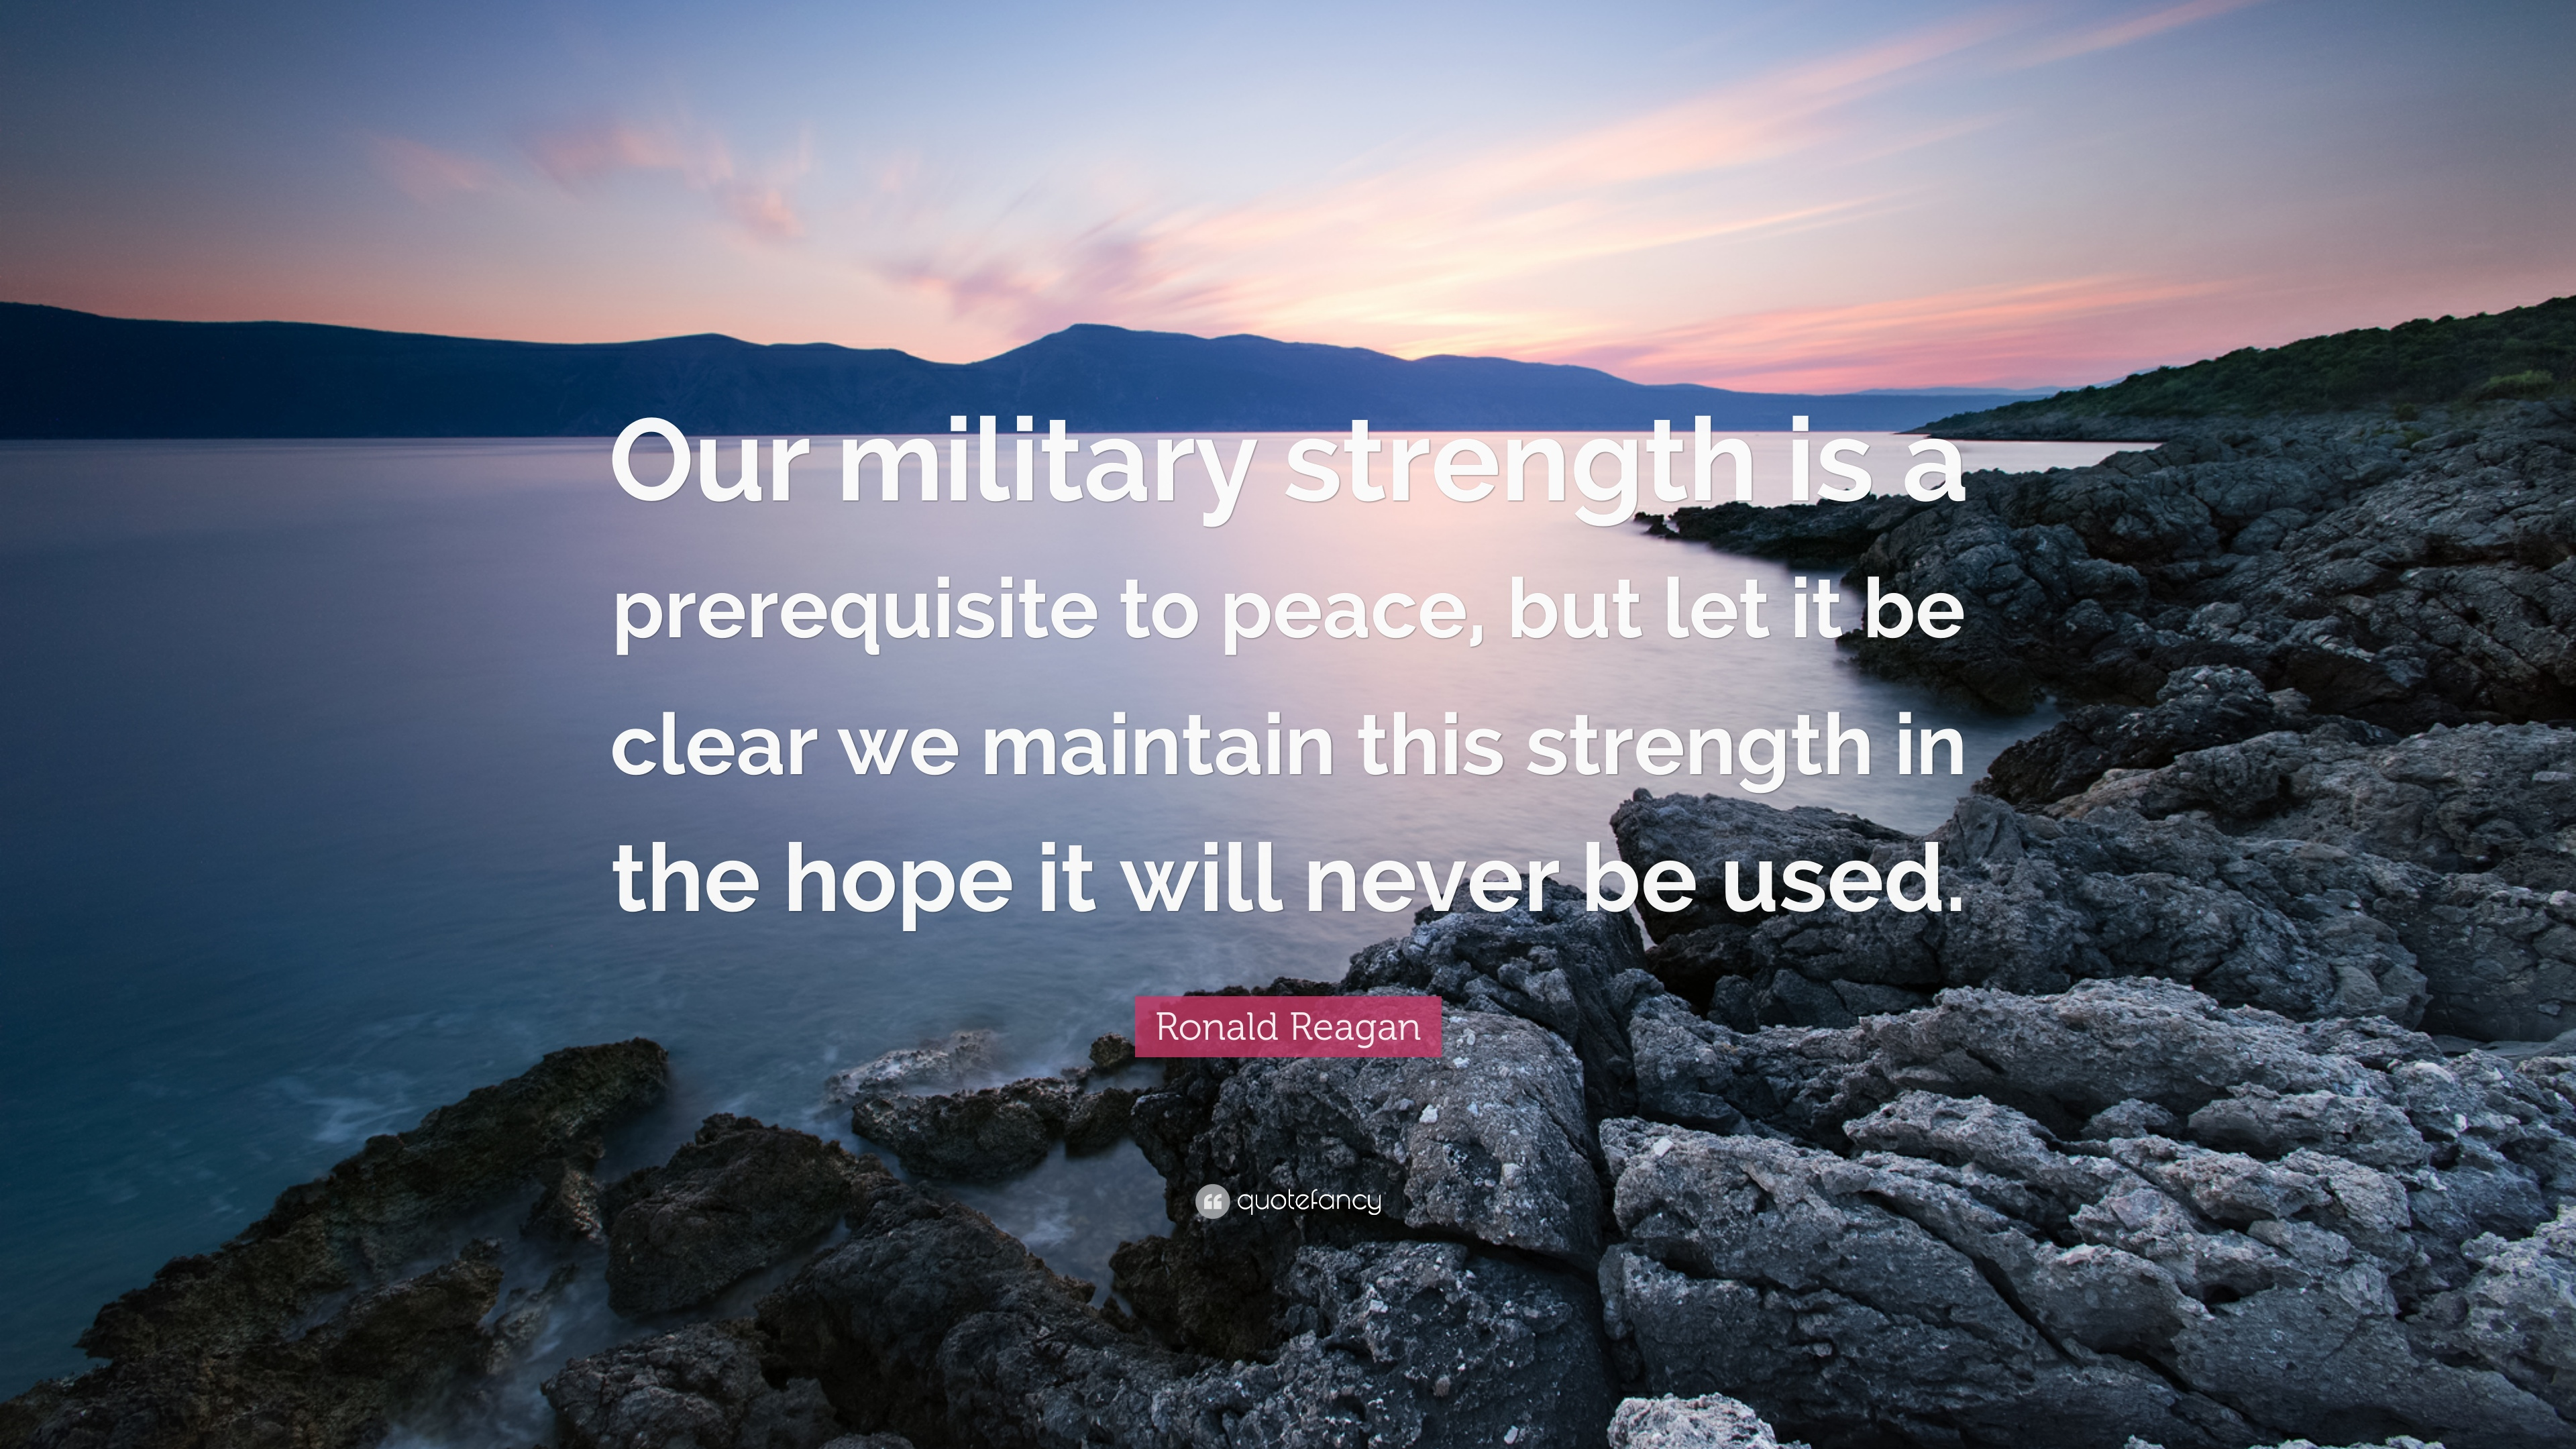 Military Strength Quotes Facebook thumbnail